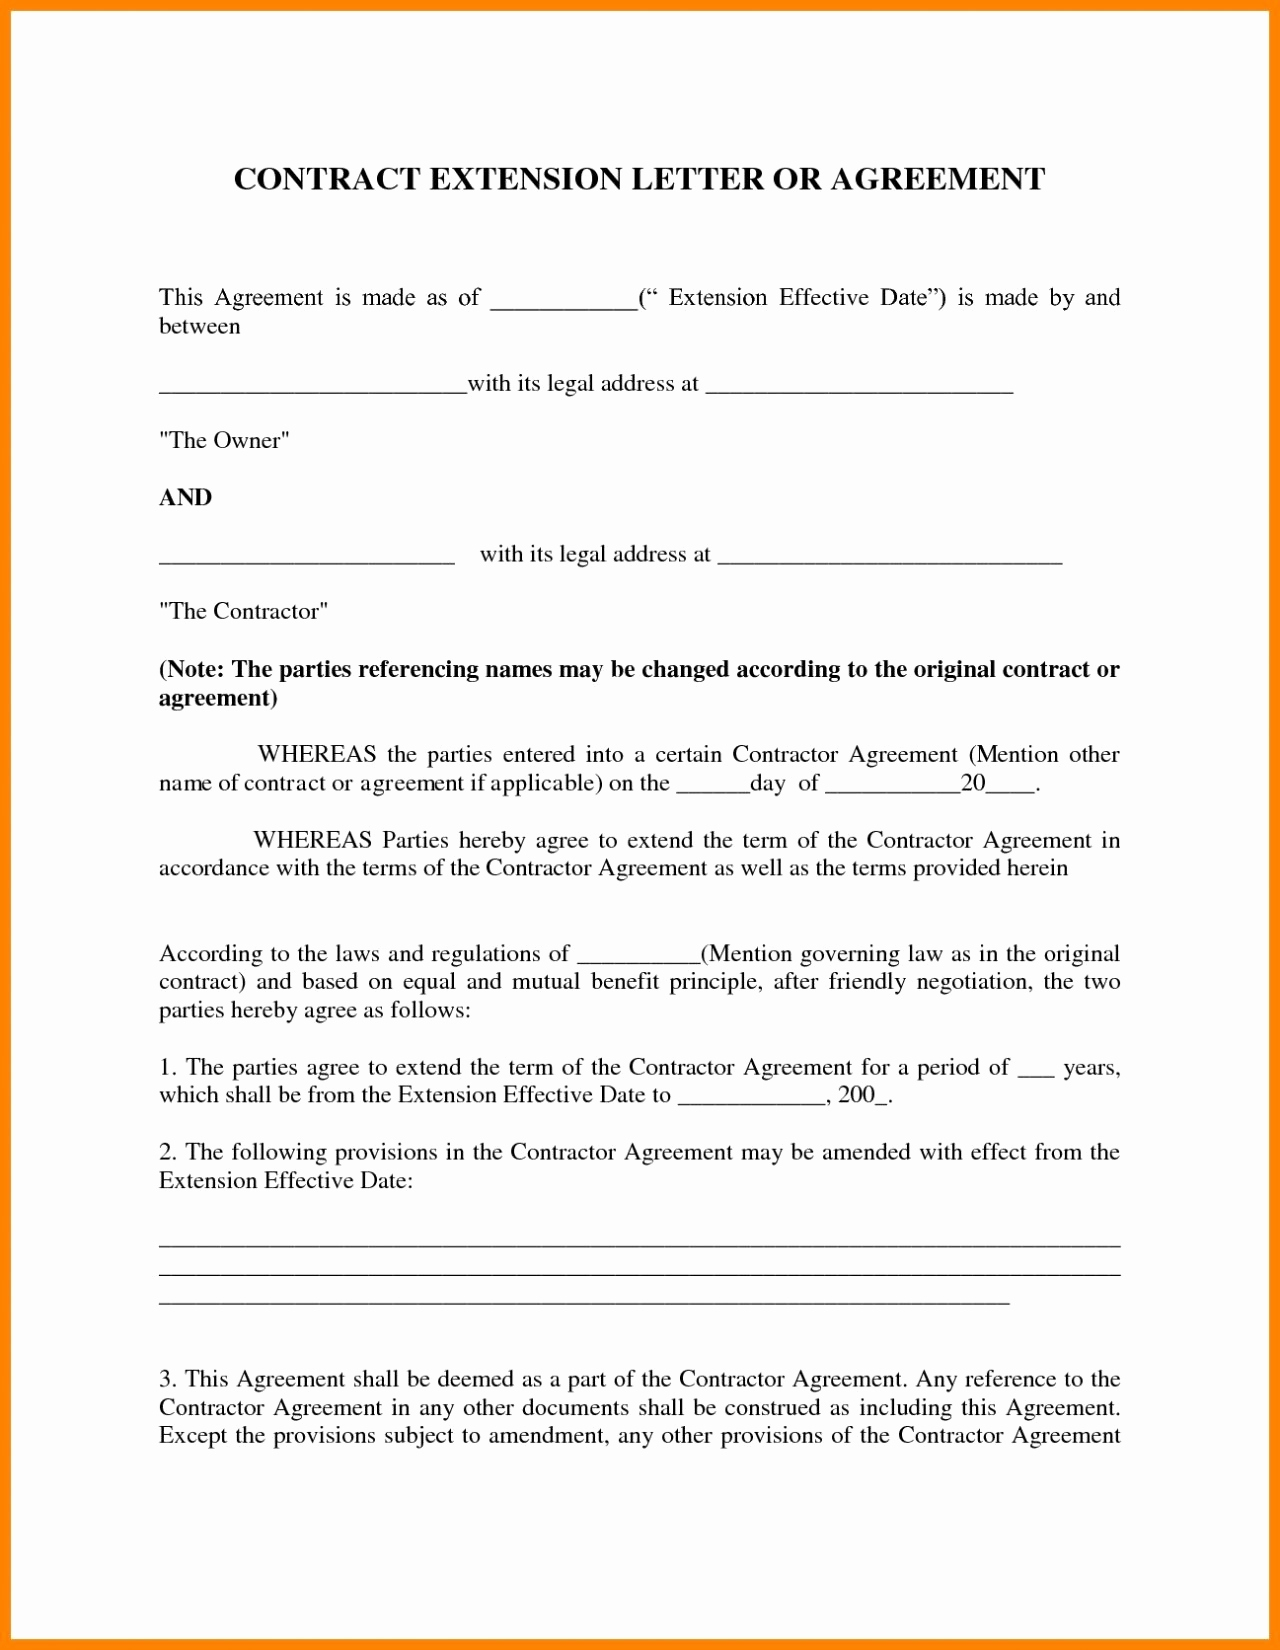 Lease Renewal Letter Template - Renewal Lease Agreement Template 19 Partnership Agreement California